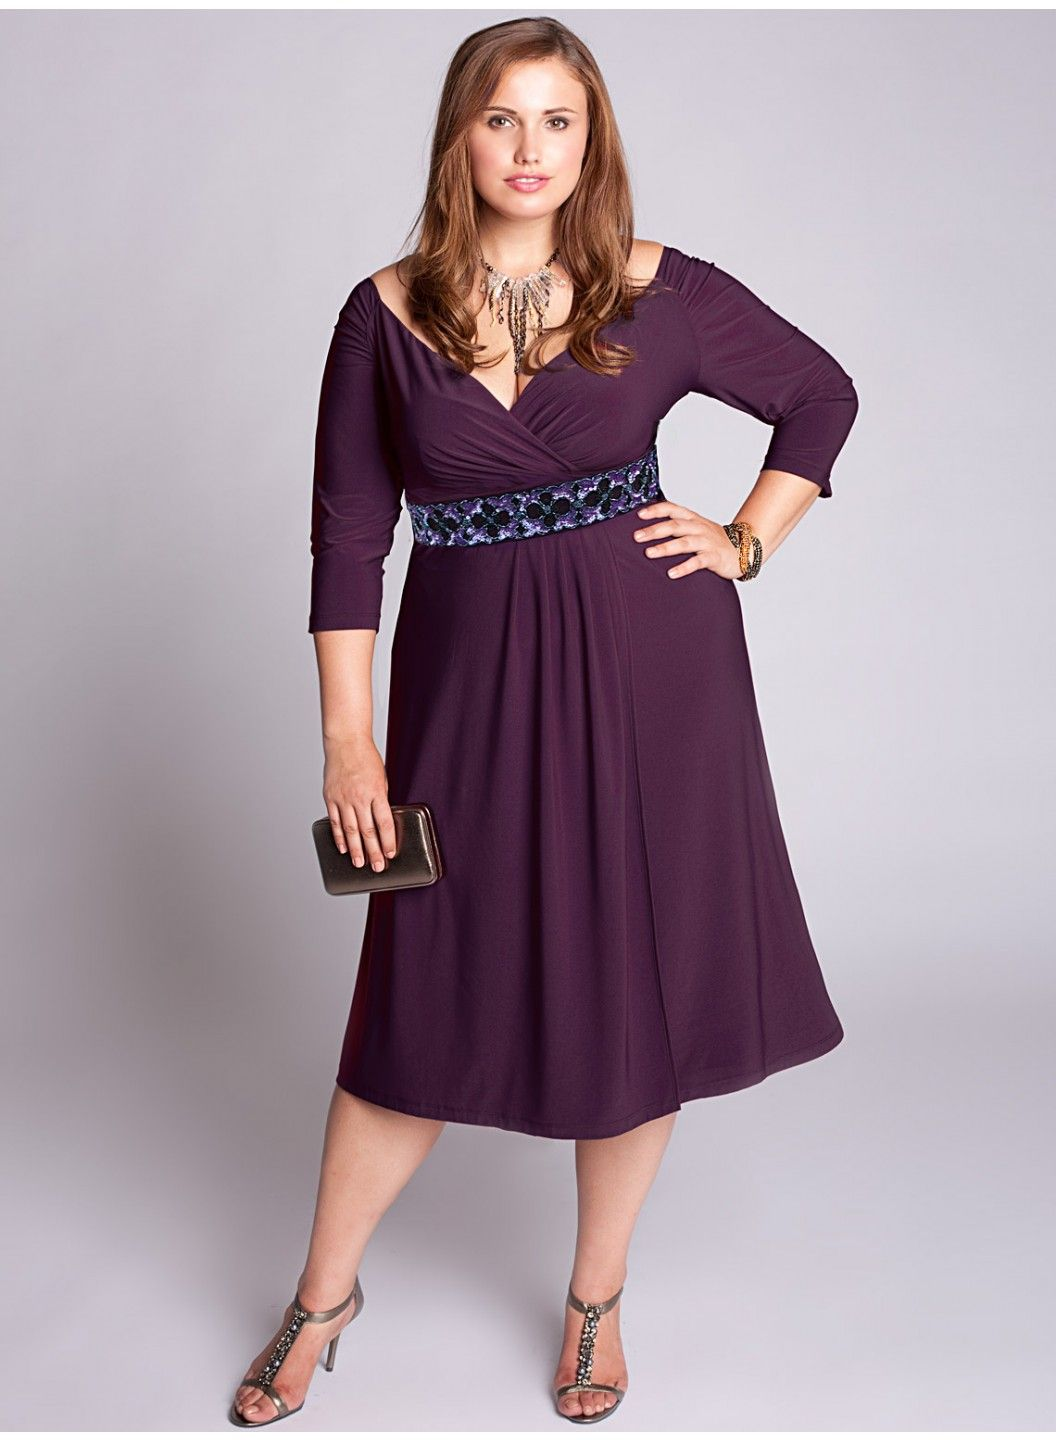 Loren Dress in Plum | Clothing and Style | Pinterest | Traje